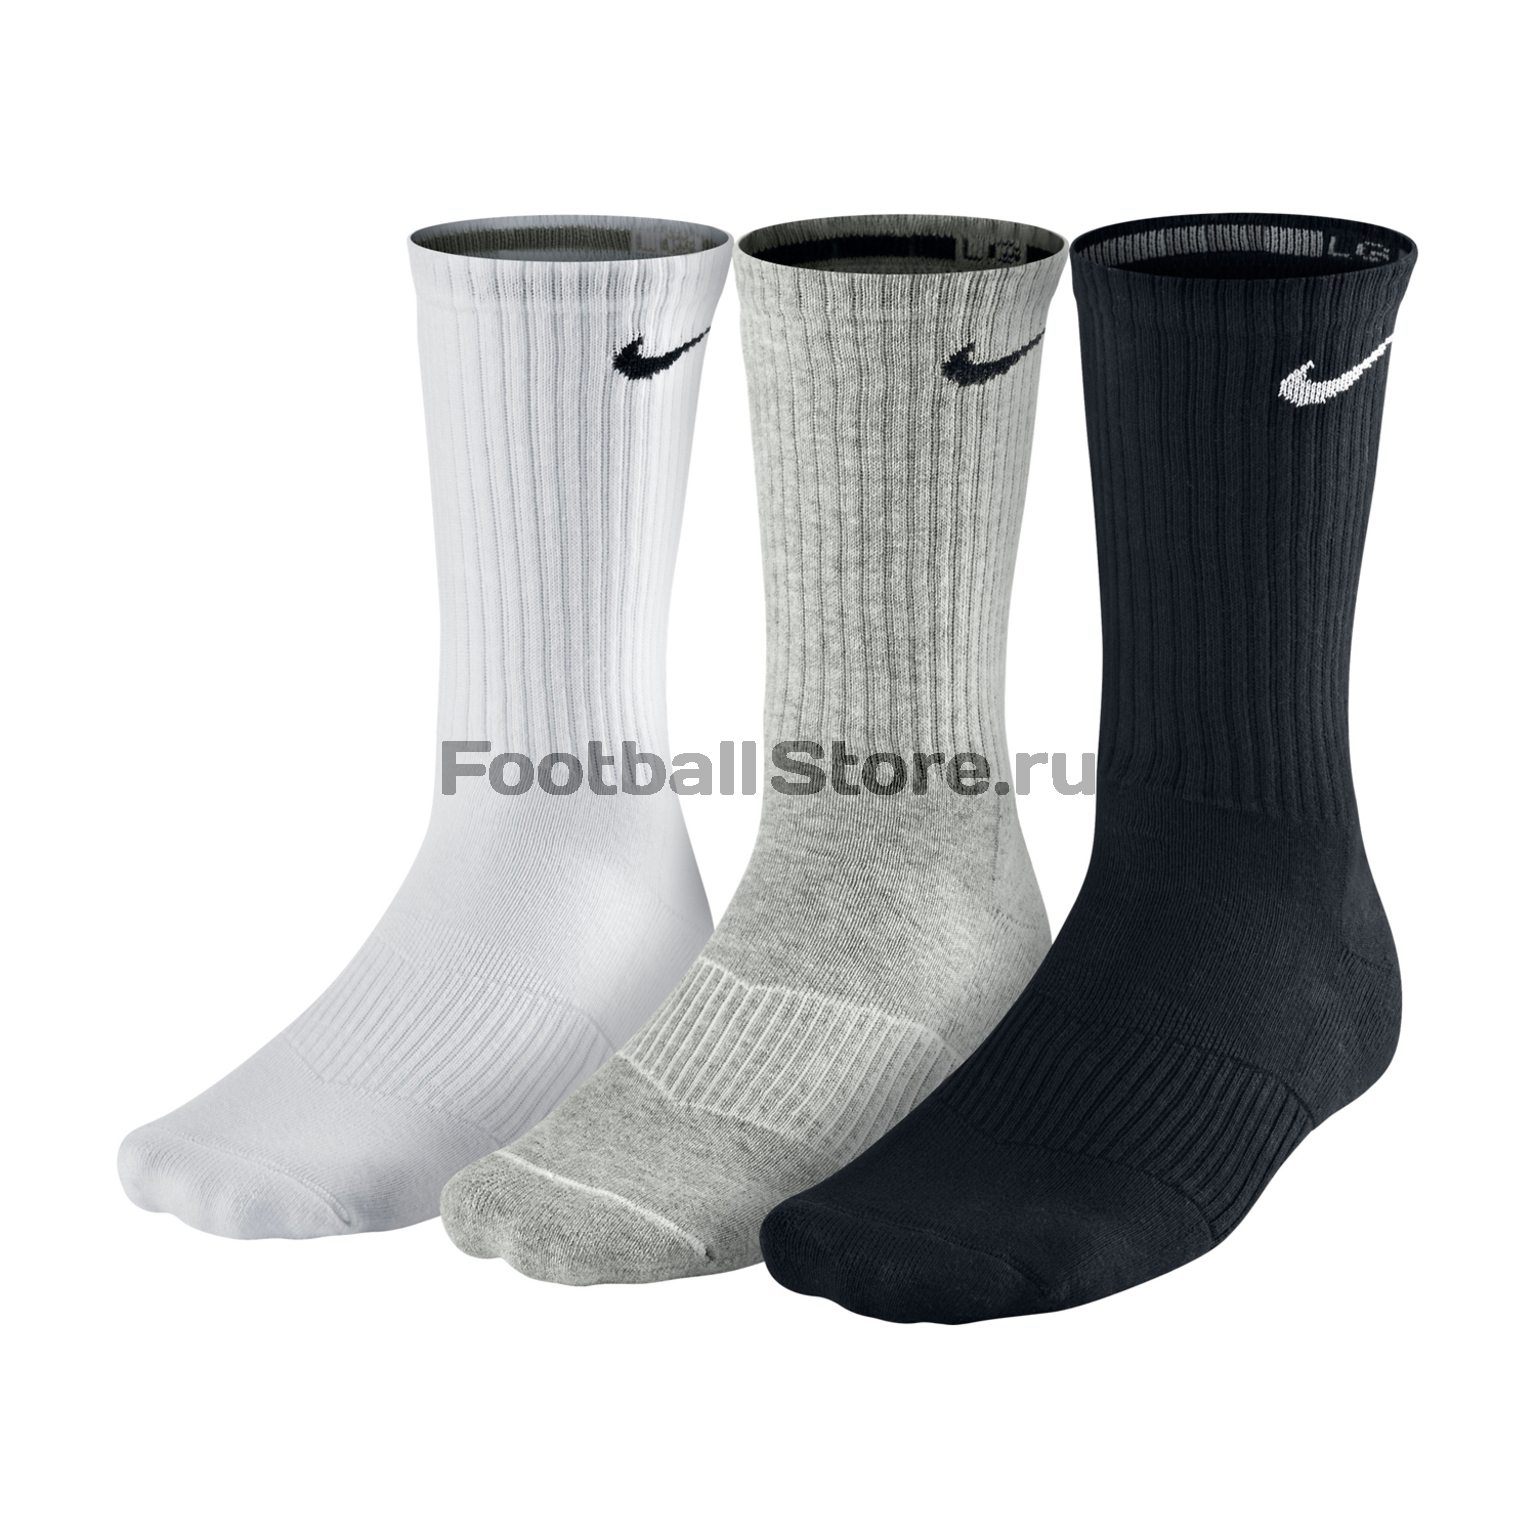 Комплект носков Nike 3ppk cushion crew SX4700-901 комплект носков nike 3ppk lightweight quarter